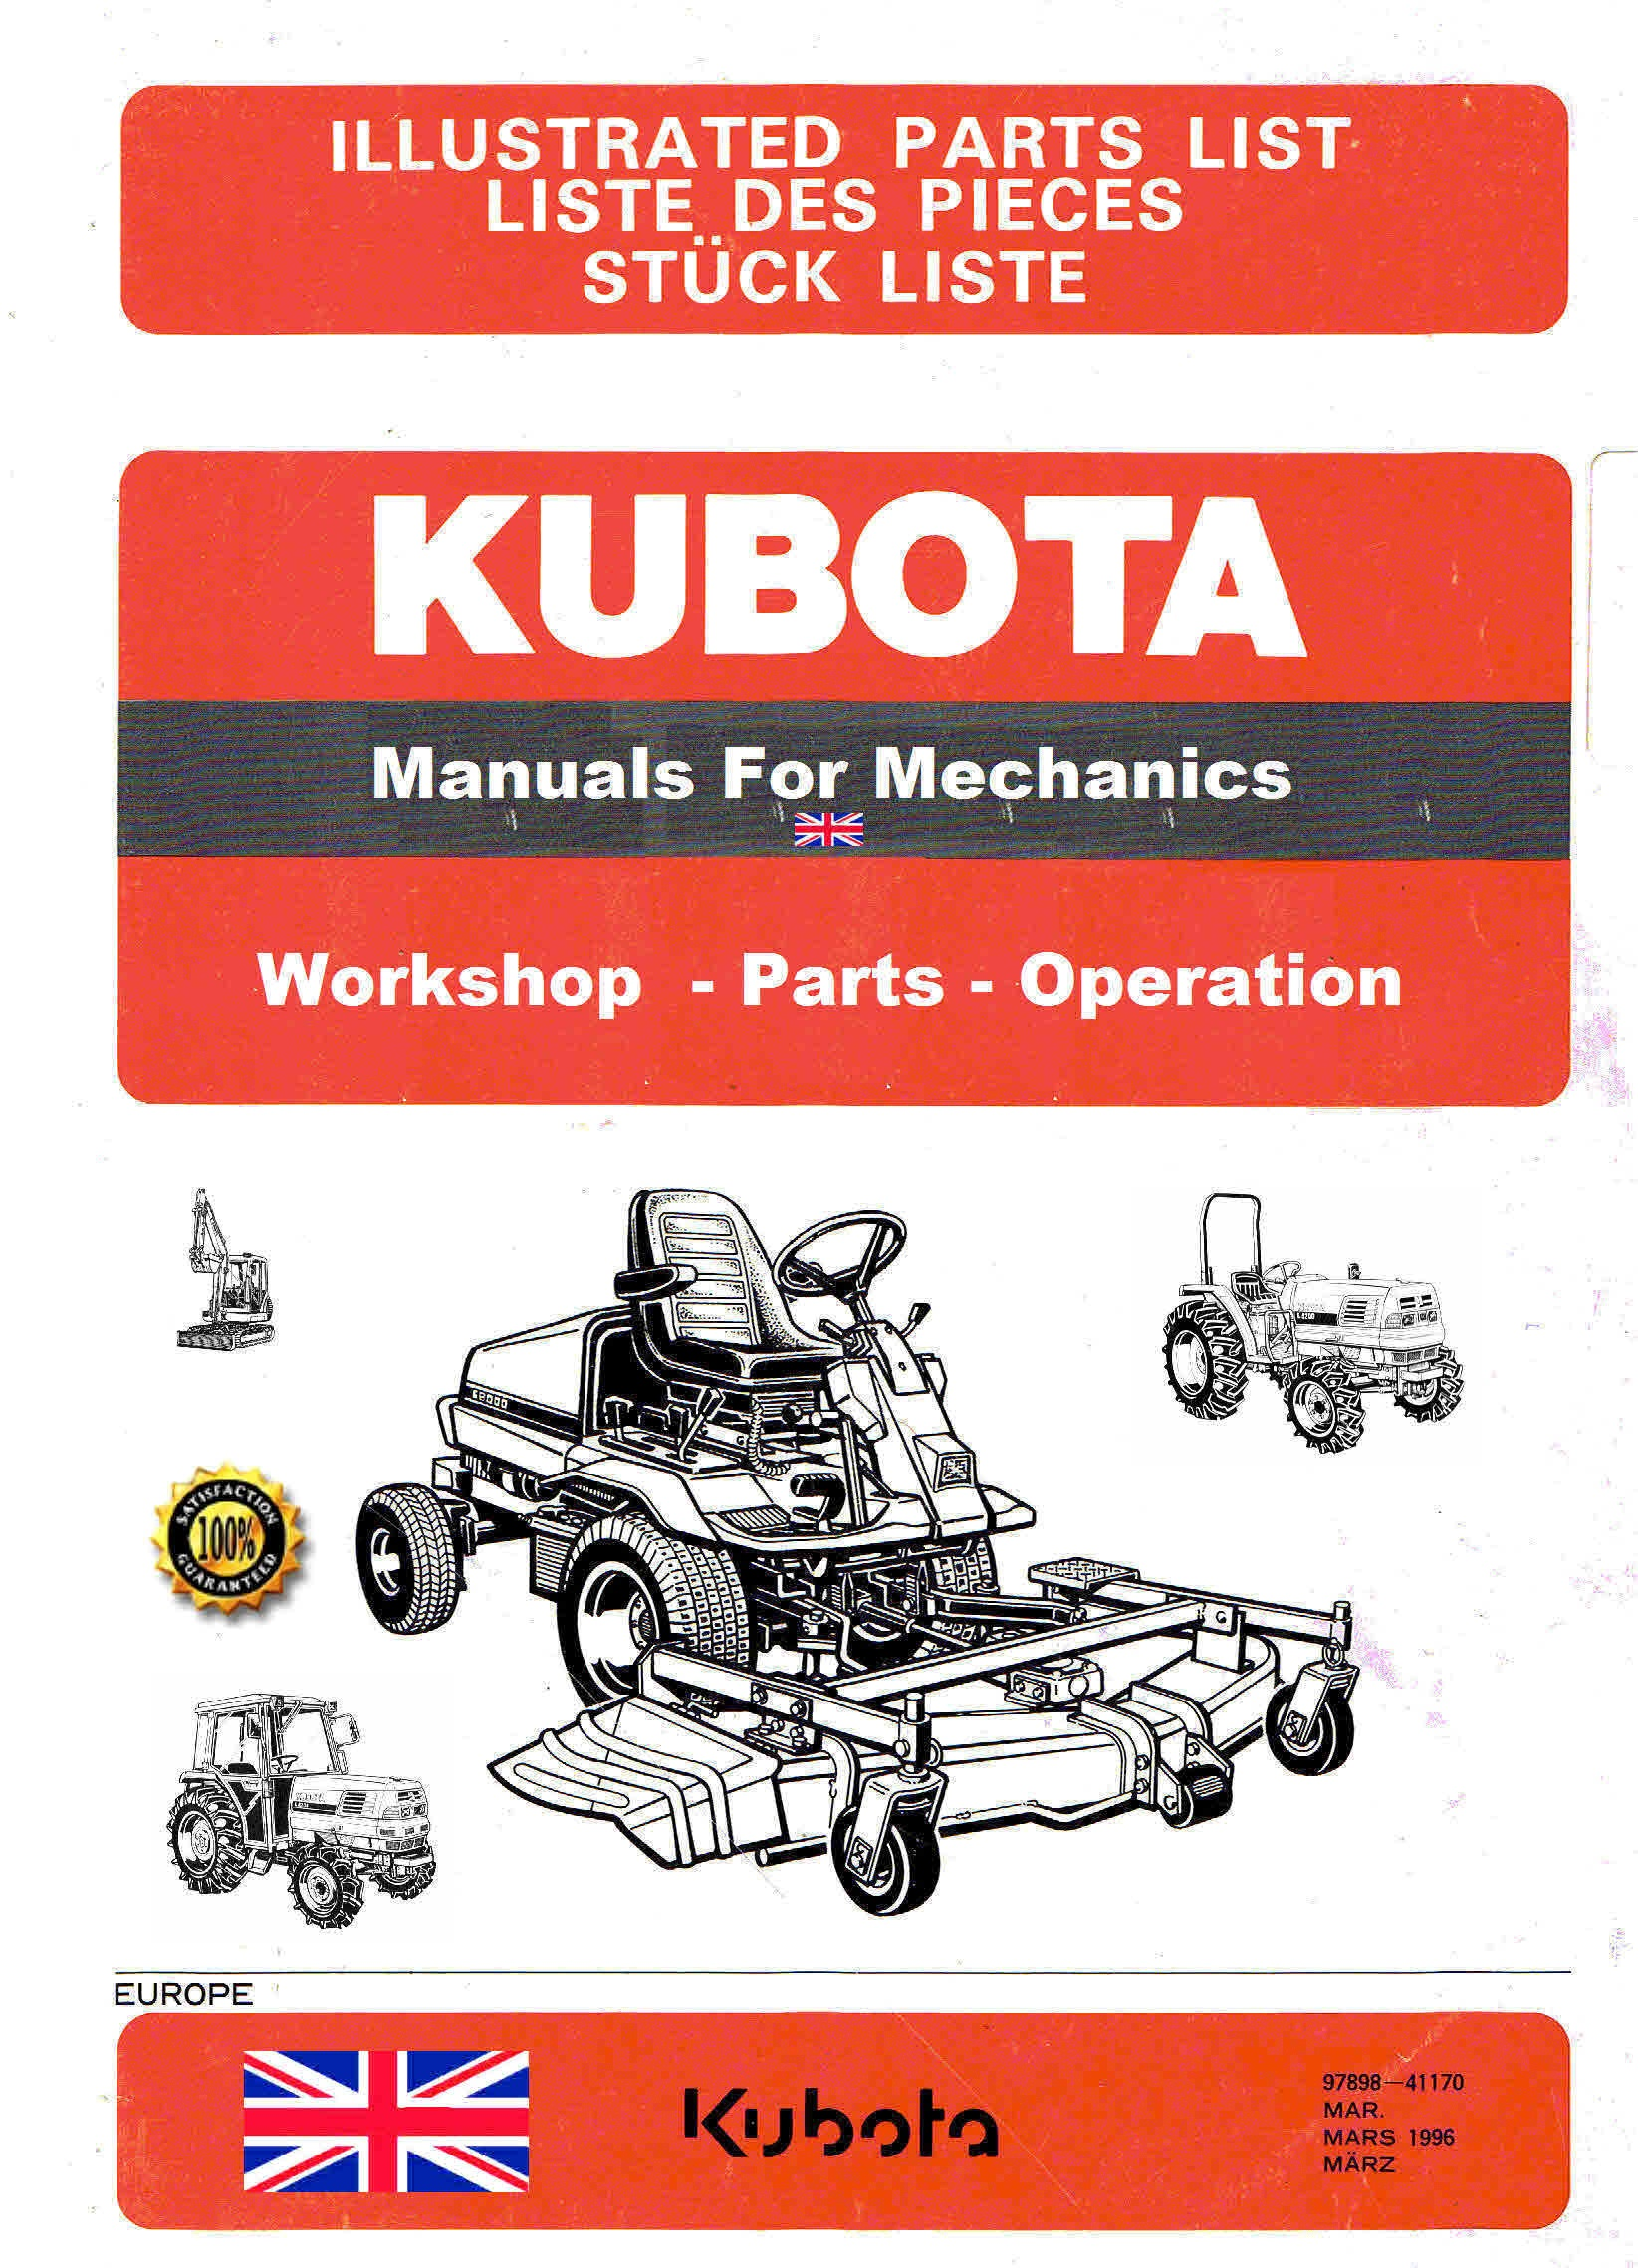 Kubota Manuals for Mechanics The Largest Plant Mechanics Kubota Manuals  Archive DVD there is. 4 gig of Service manuals - Illustrated Part manuals  with ...